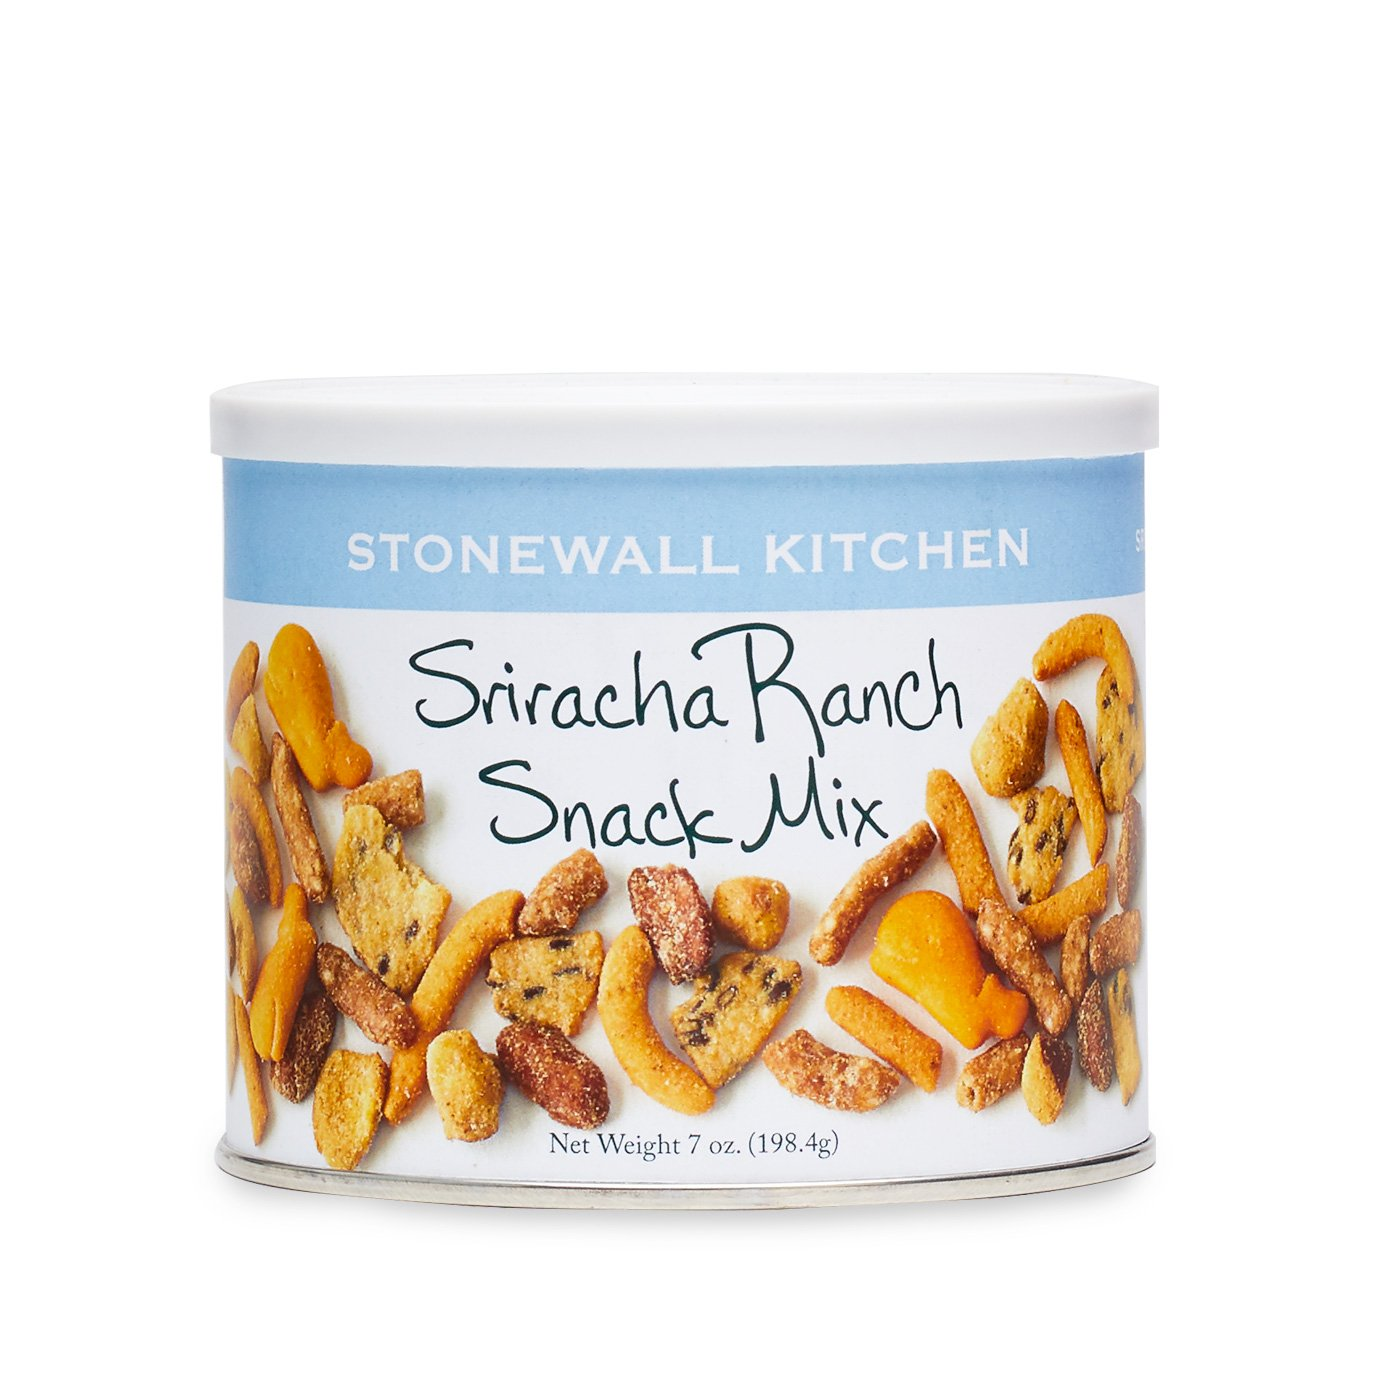 Stonewall Kitchen Sriracha Ranch Ultimate Mix, 7oz by Stonewall Kitchen